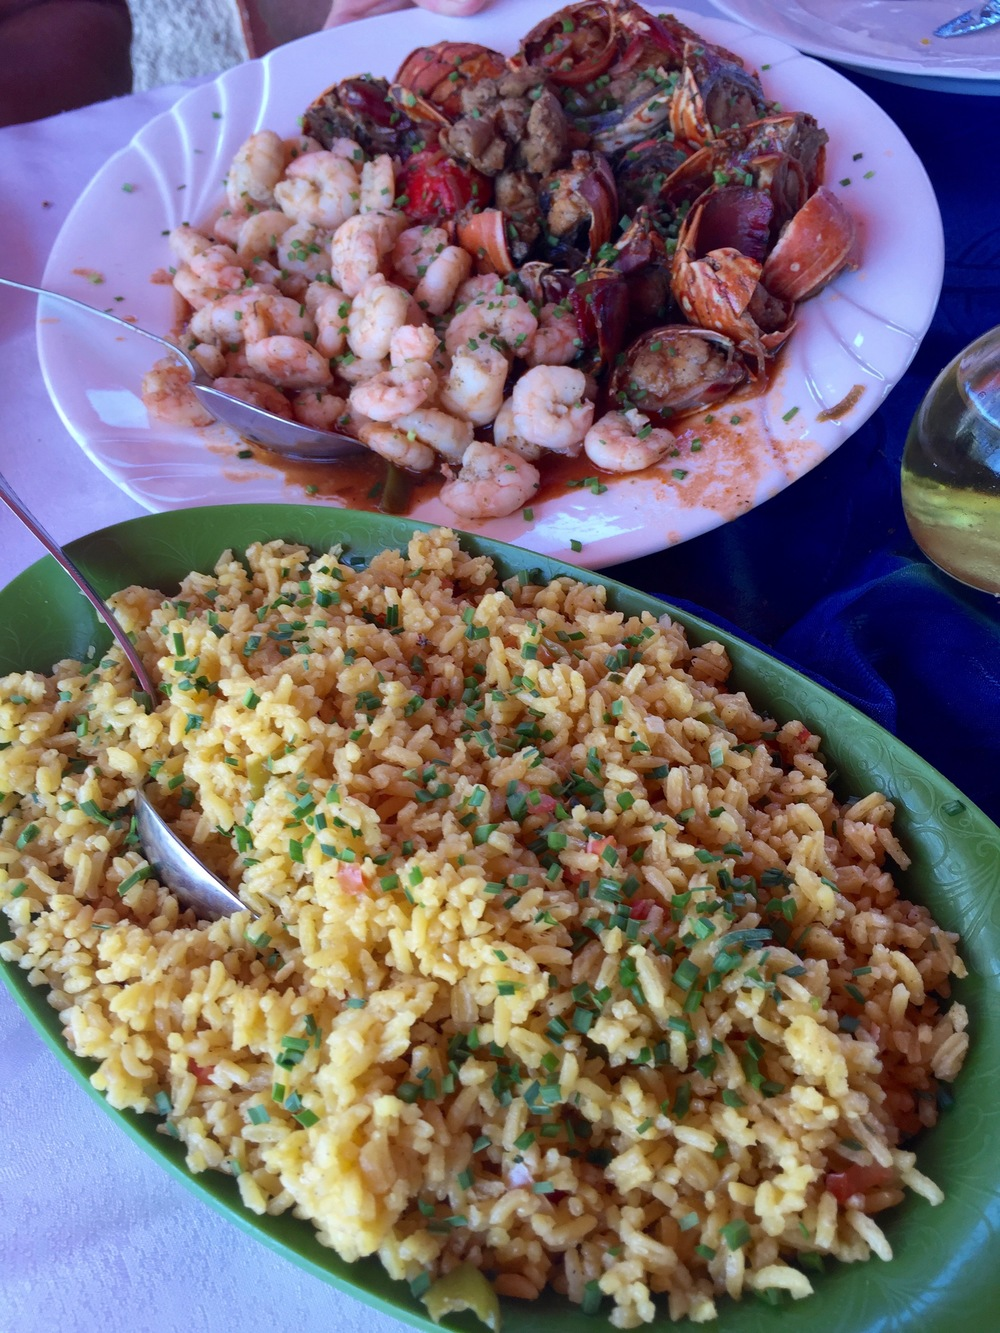 Langosta (lobster), camarones (shrimp) and arroz (rice) -- my favorite meal of the trip!